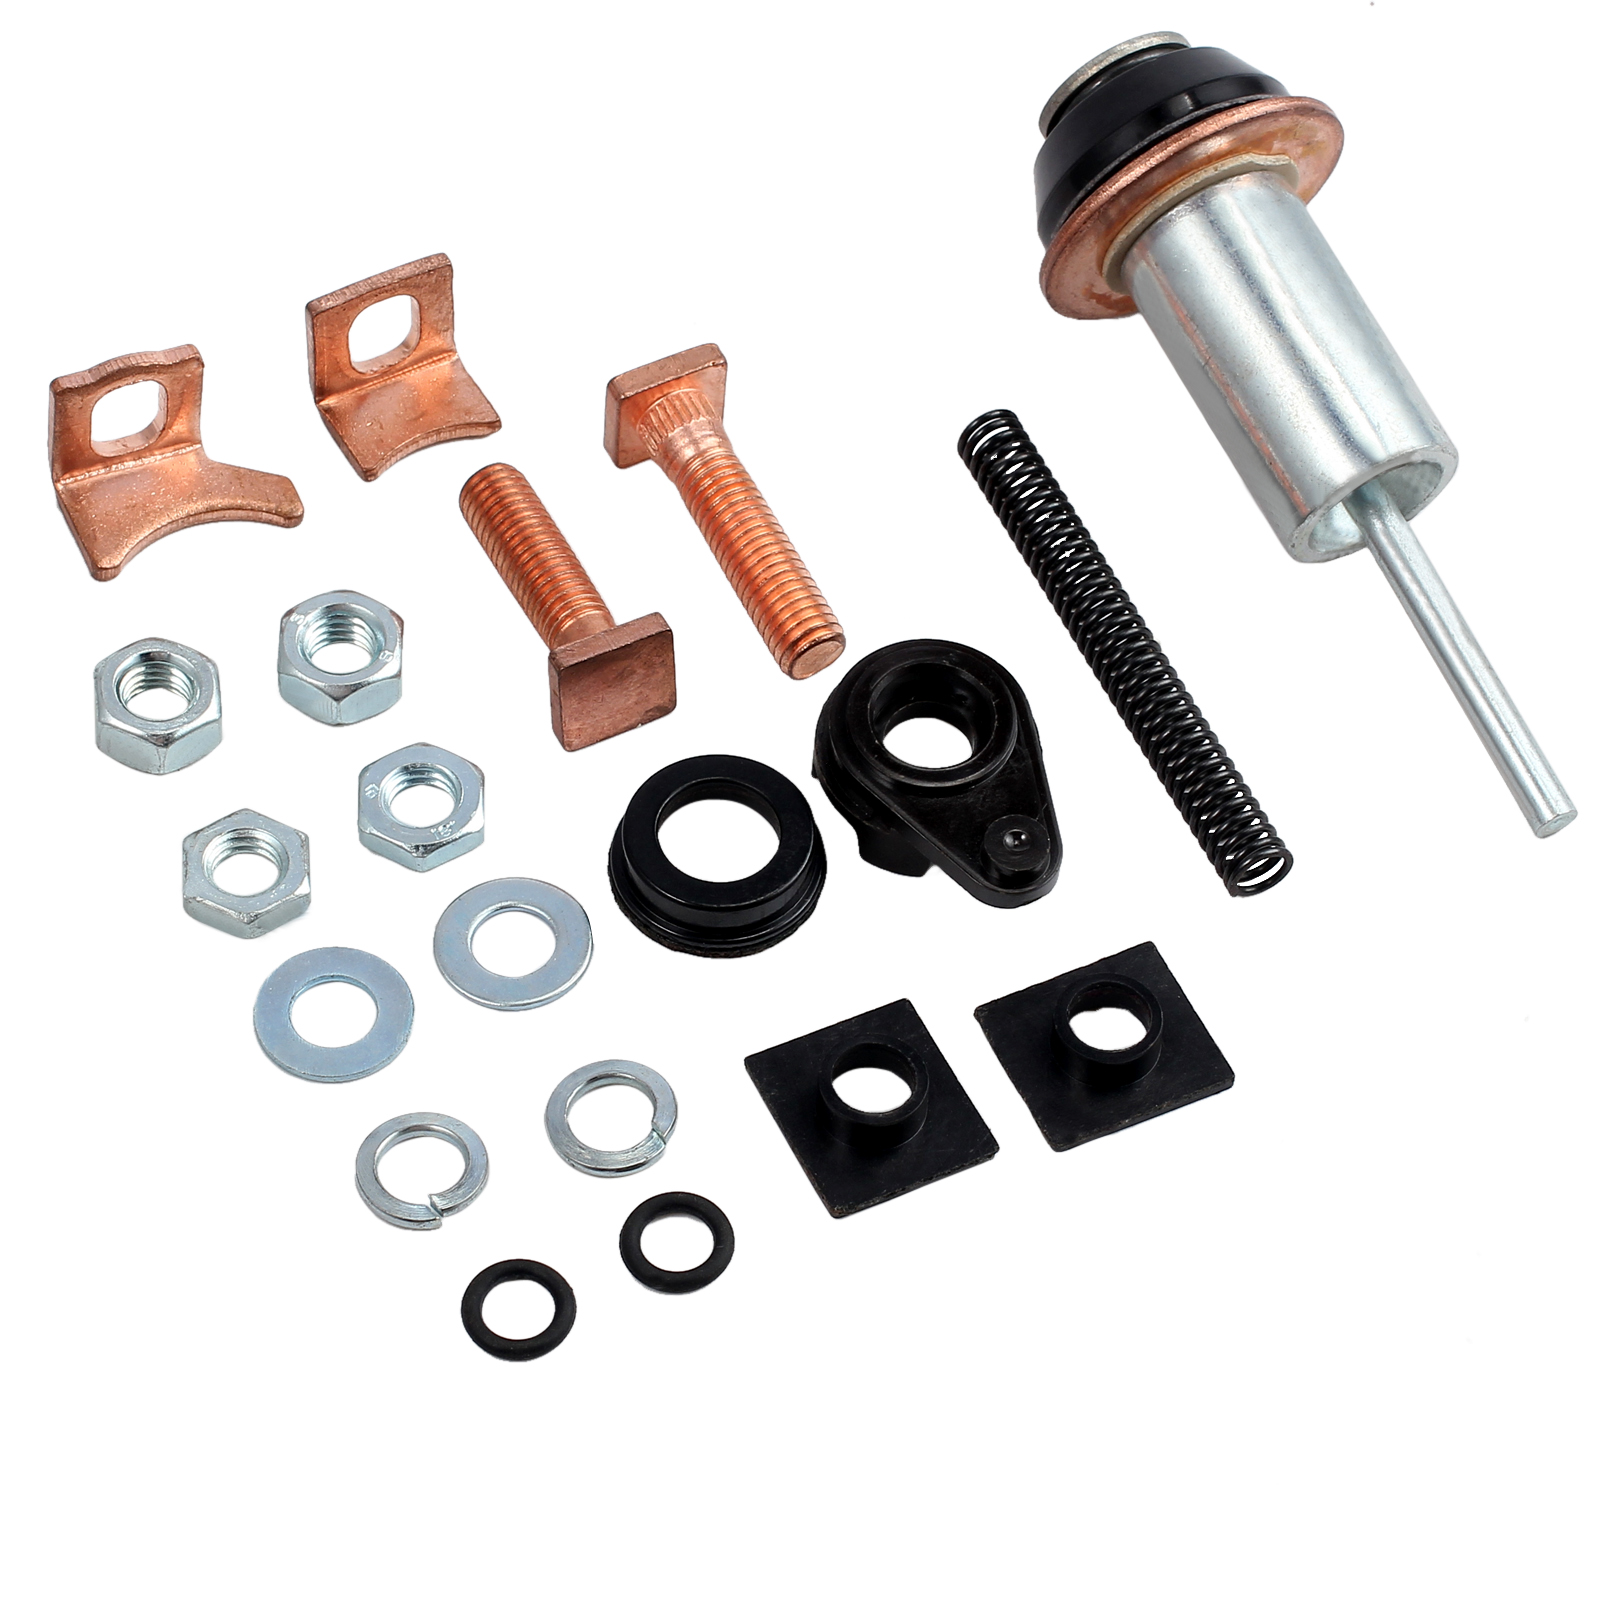 Starter Motor Solenoid Repair Kits Nuts For Land Rover